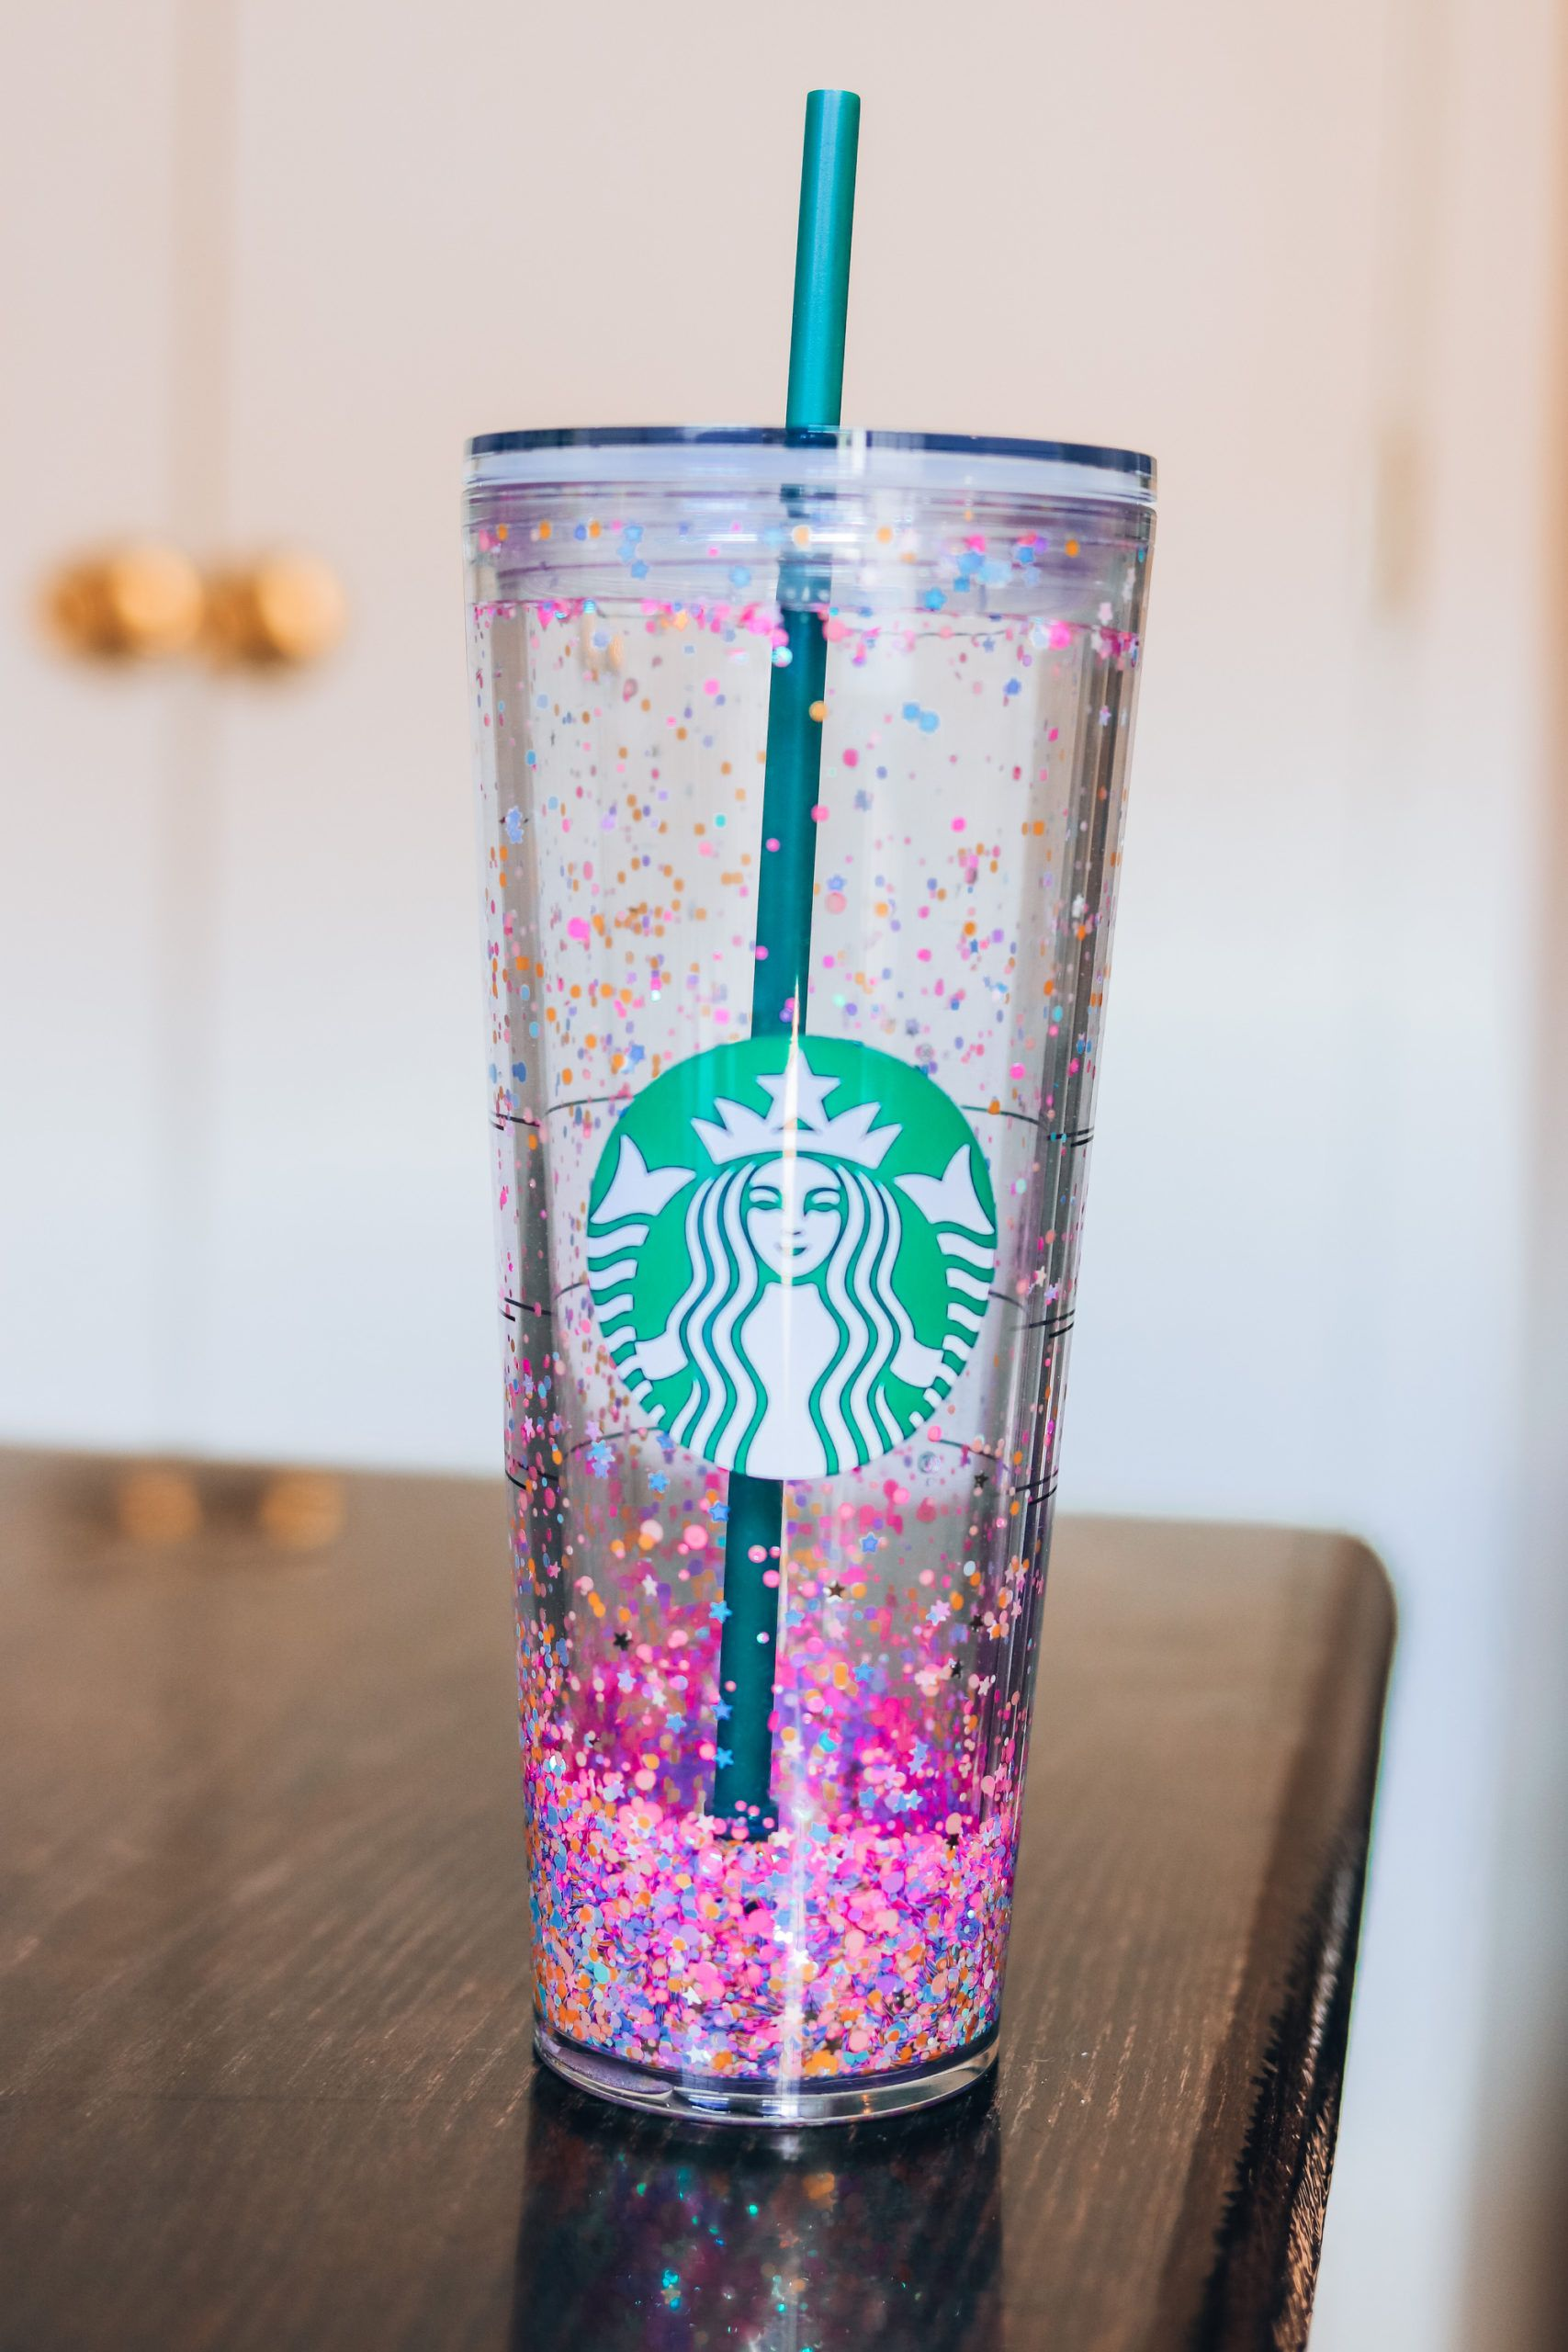 How to make a glitter tumbler with floating confetti